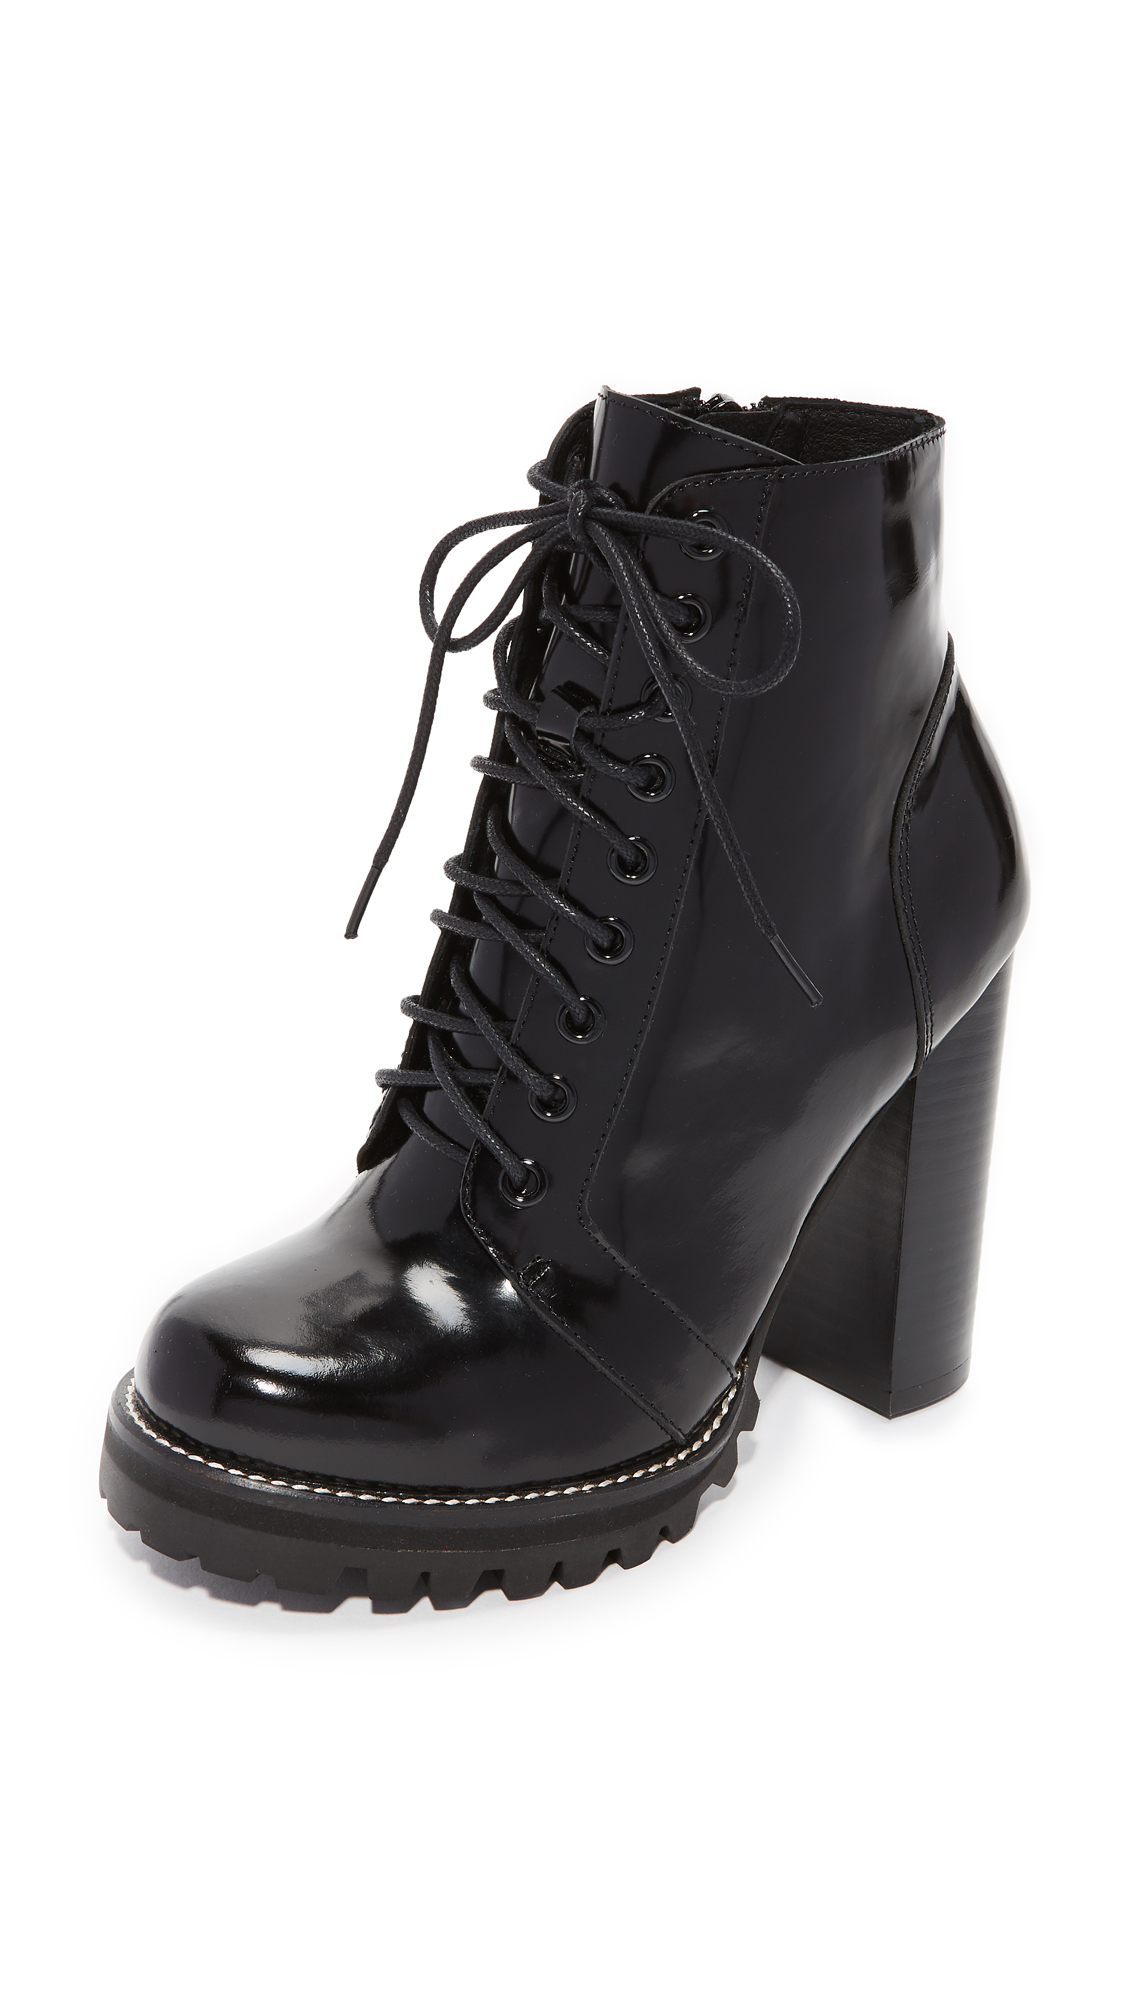 Jeffrey Campbell Legion Lace Up High Heel Booties - Black Box